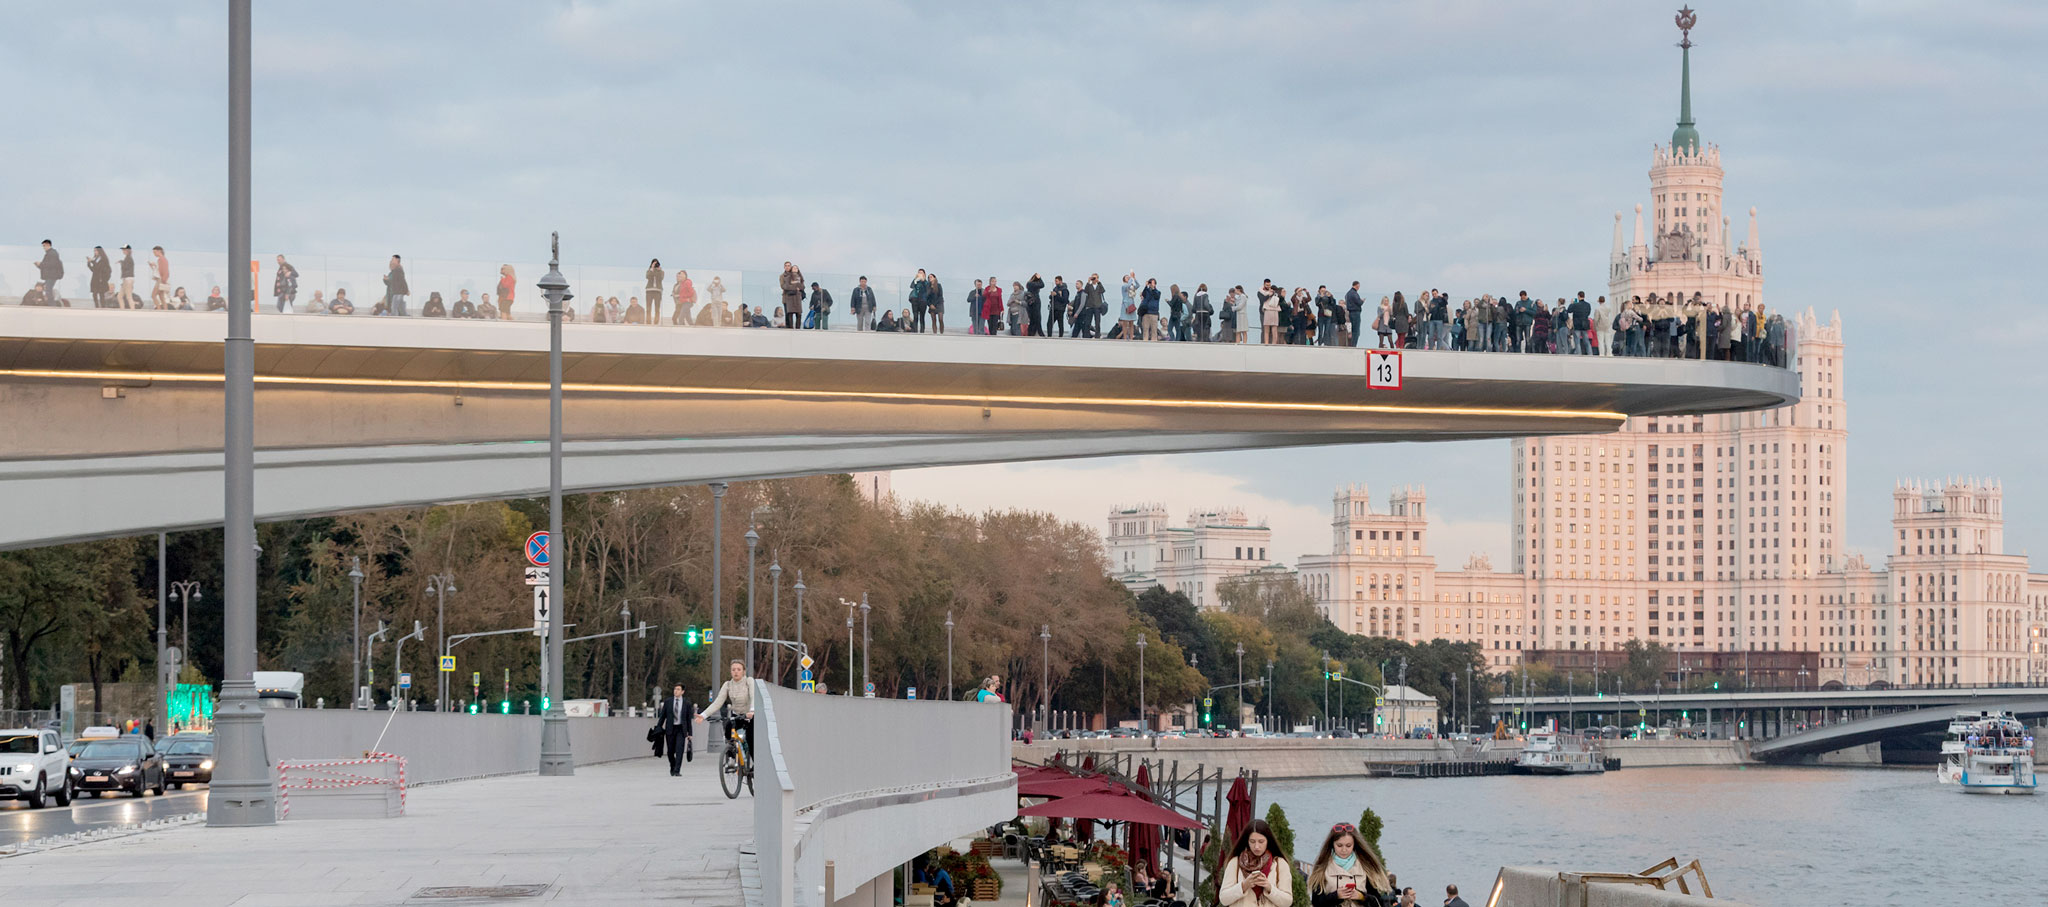 The new Zaryadye Park in Moscow is the centerpiece of a plan to increase and enhance the city's public space. Photograph © Iwan Baan. Courtesy of Diller Scofidio + Renfro